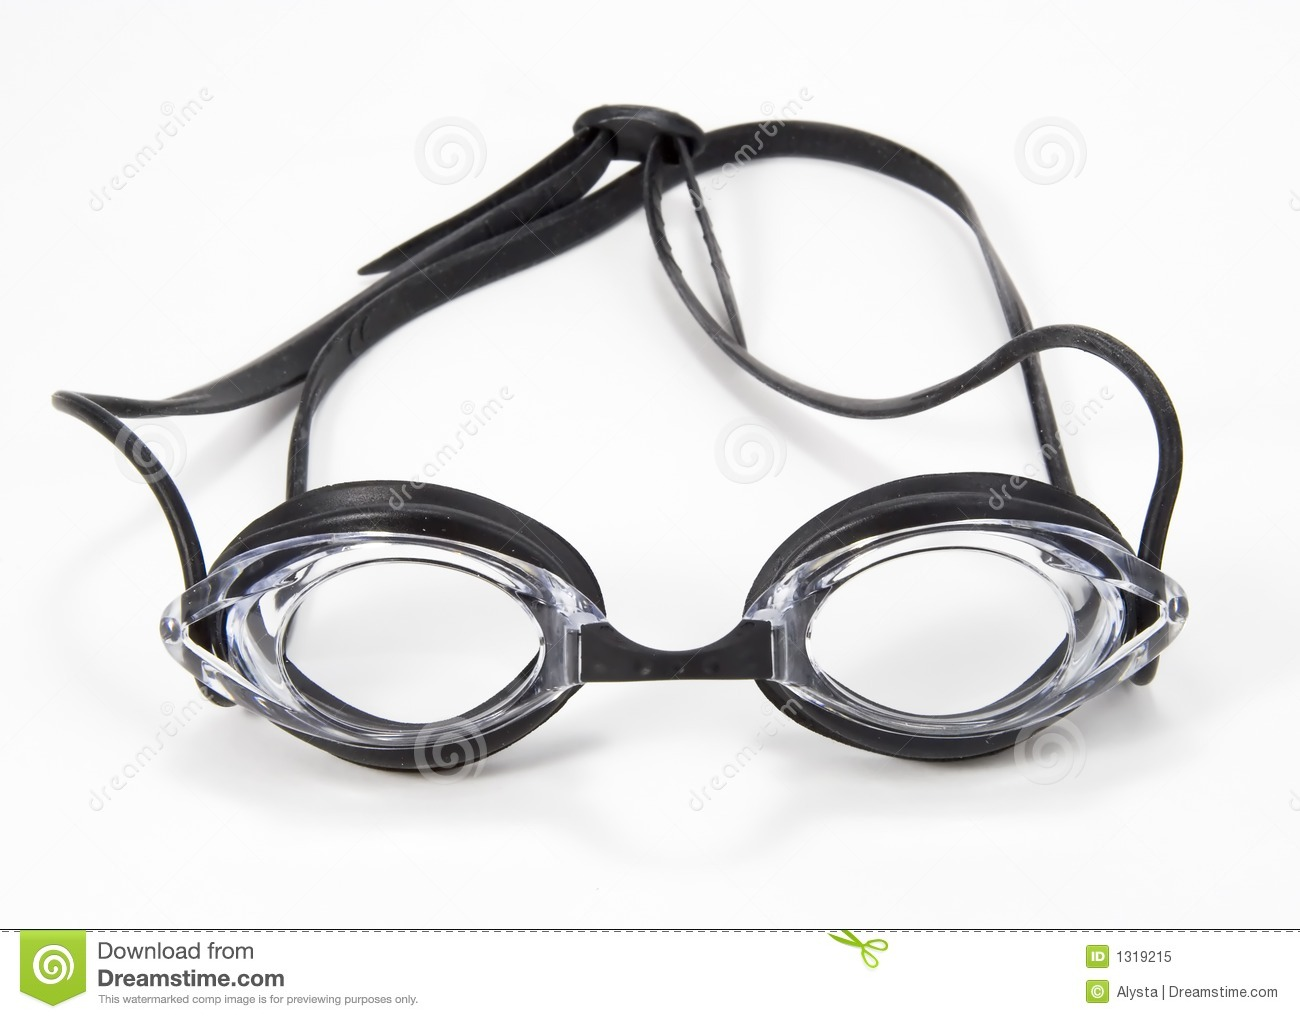 Dreamstime Comblack Swimming Goggles Front Royalty Free Stock Photo